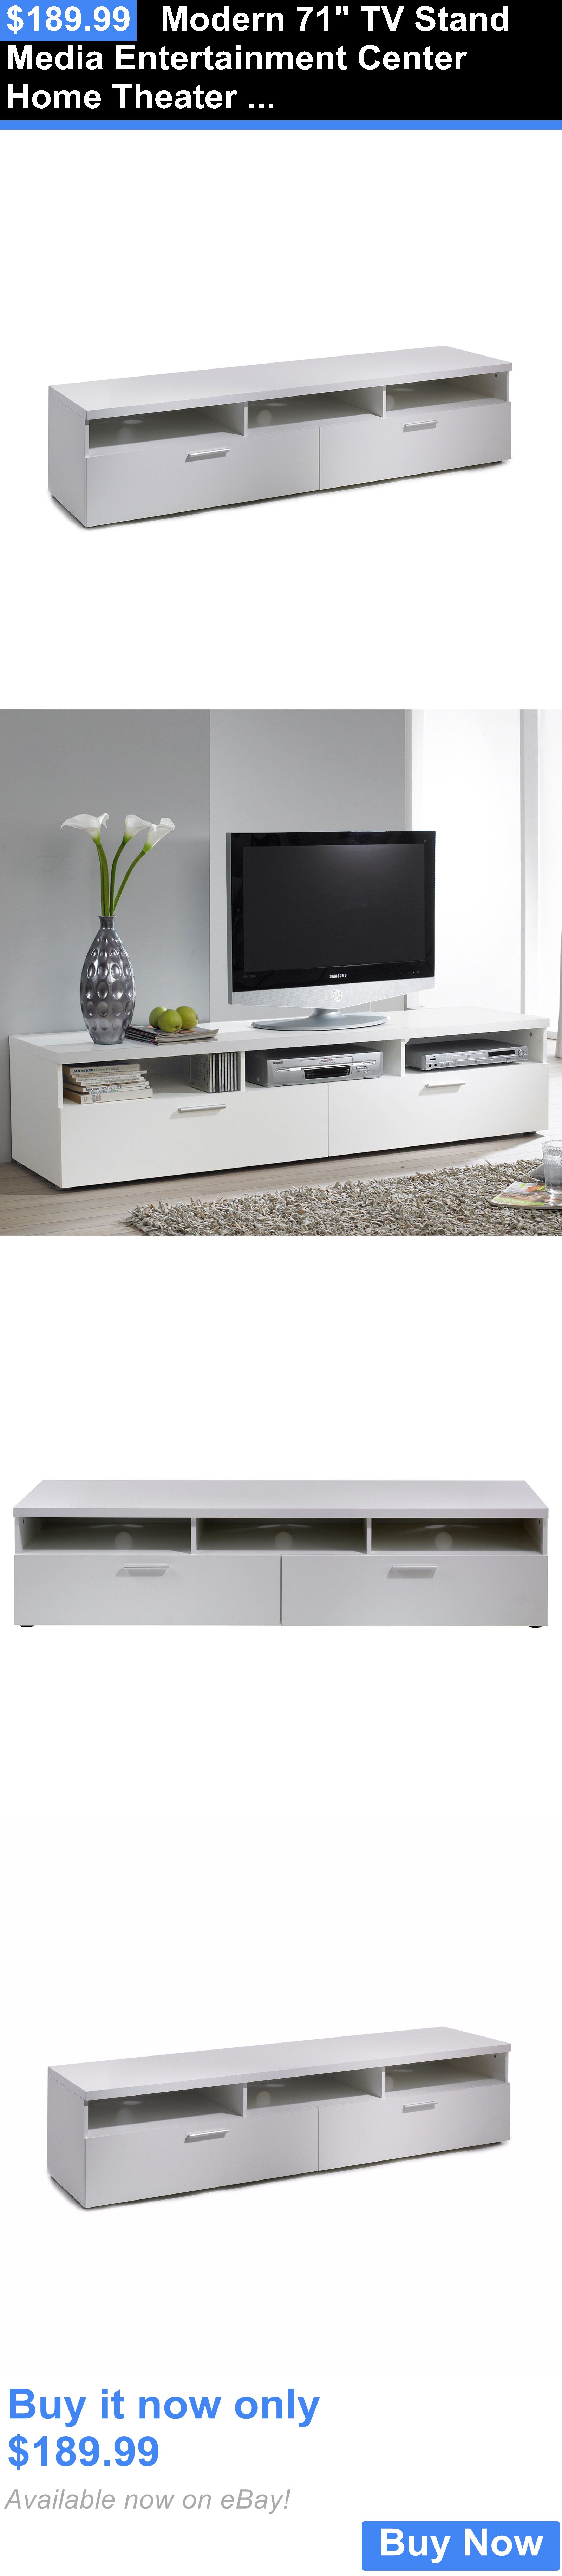 Entertainment Units TV Stands: Modern 71 Tv Stand Media ...